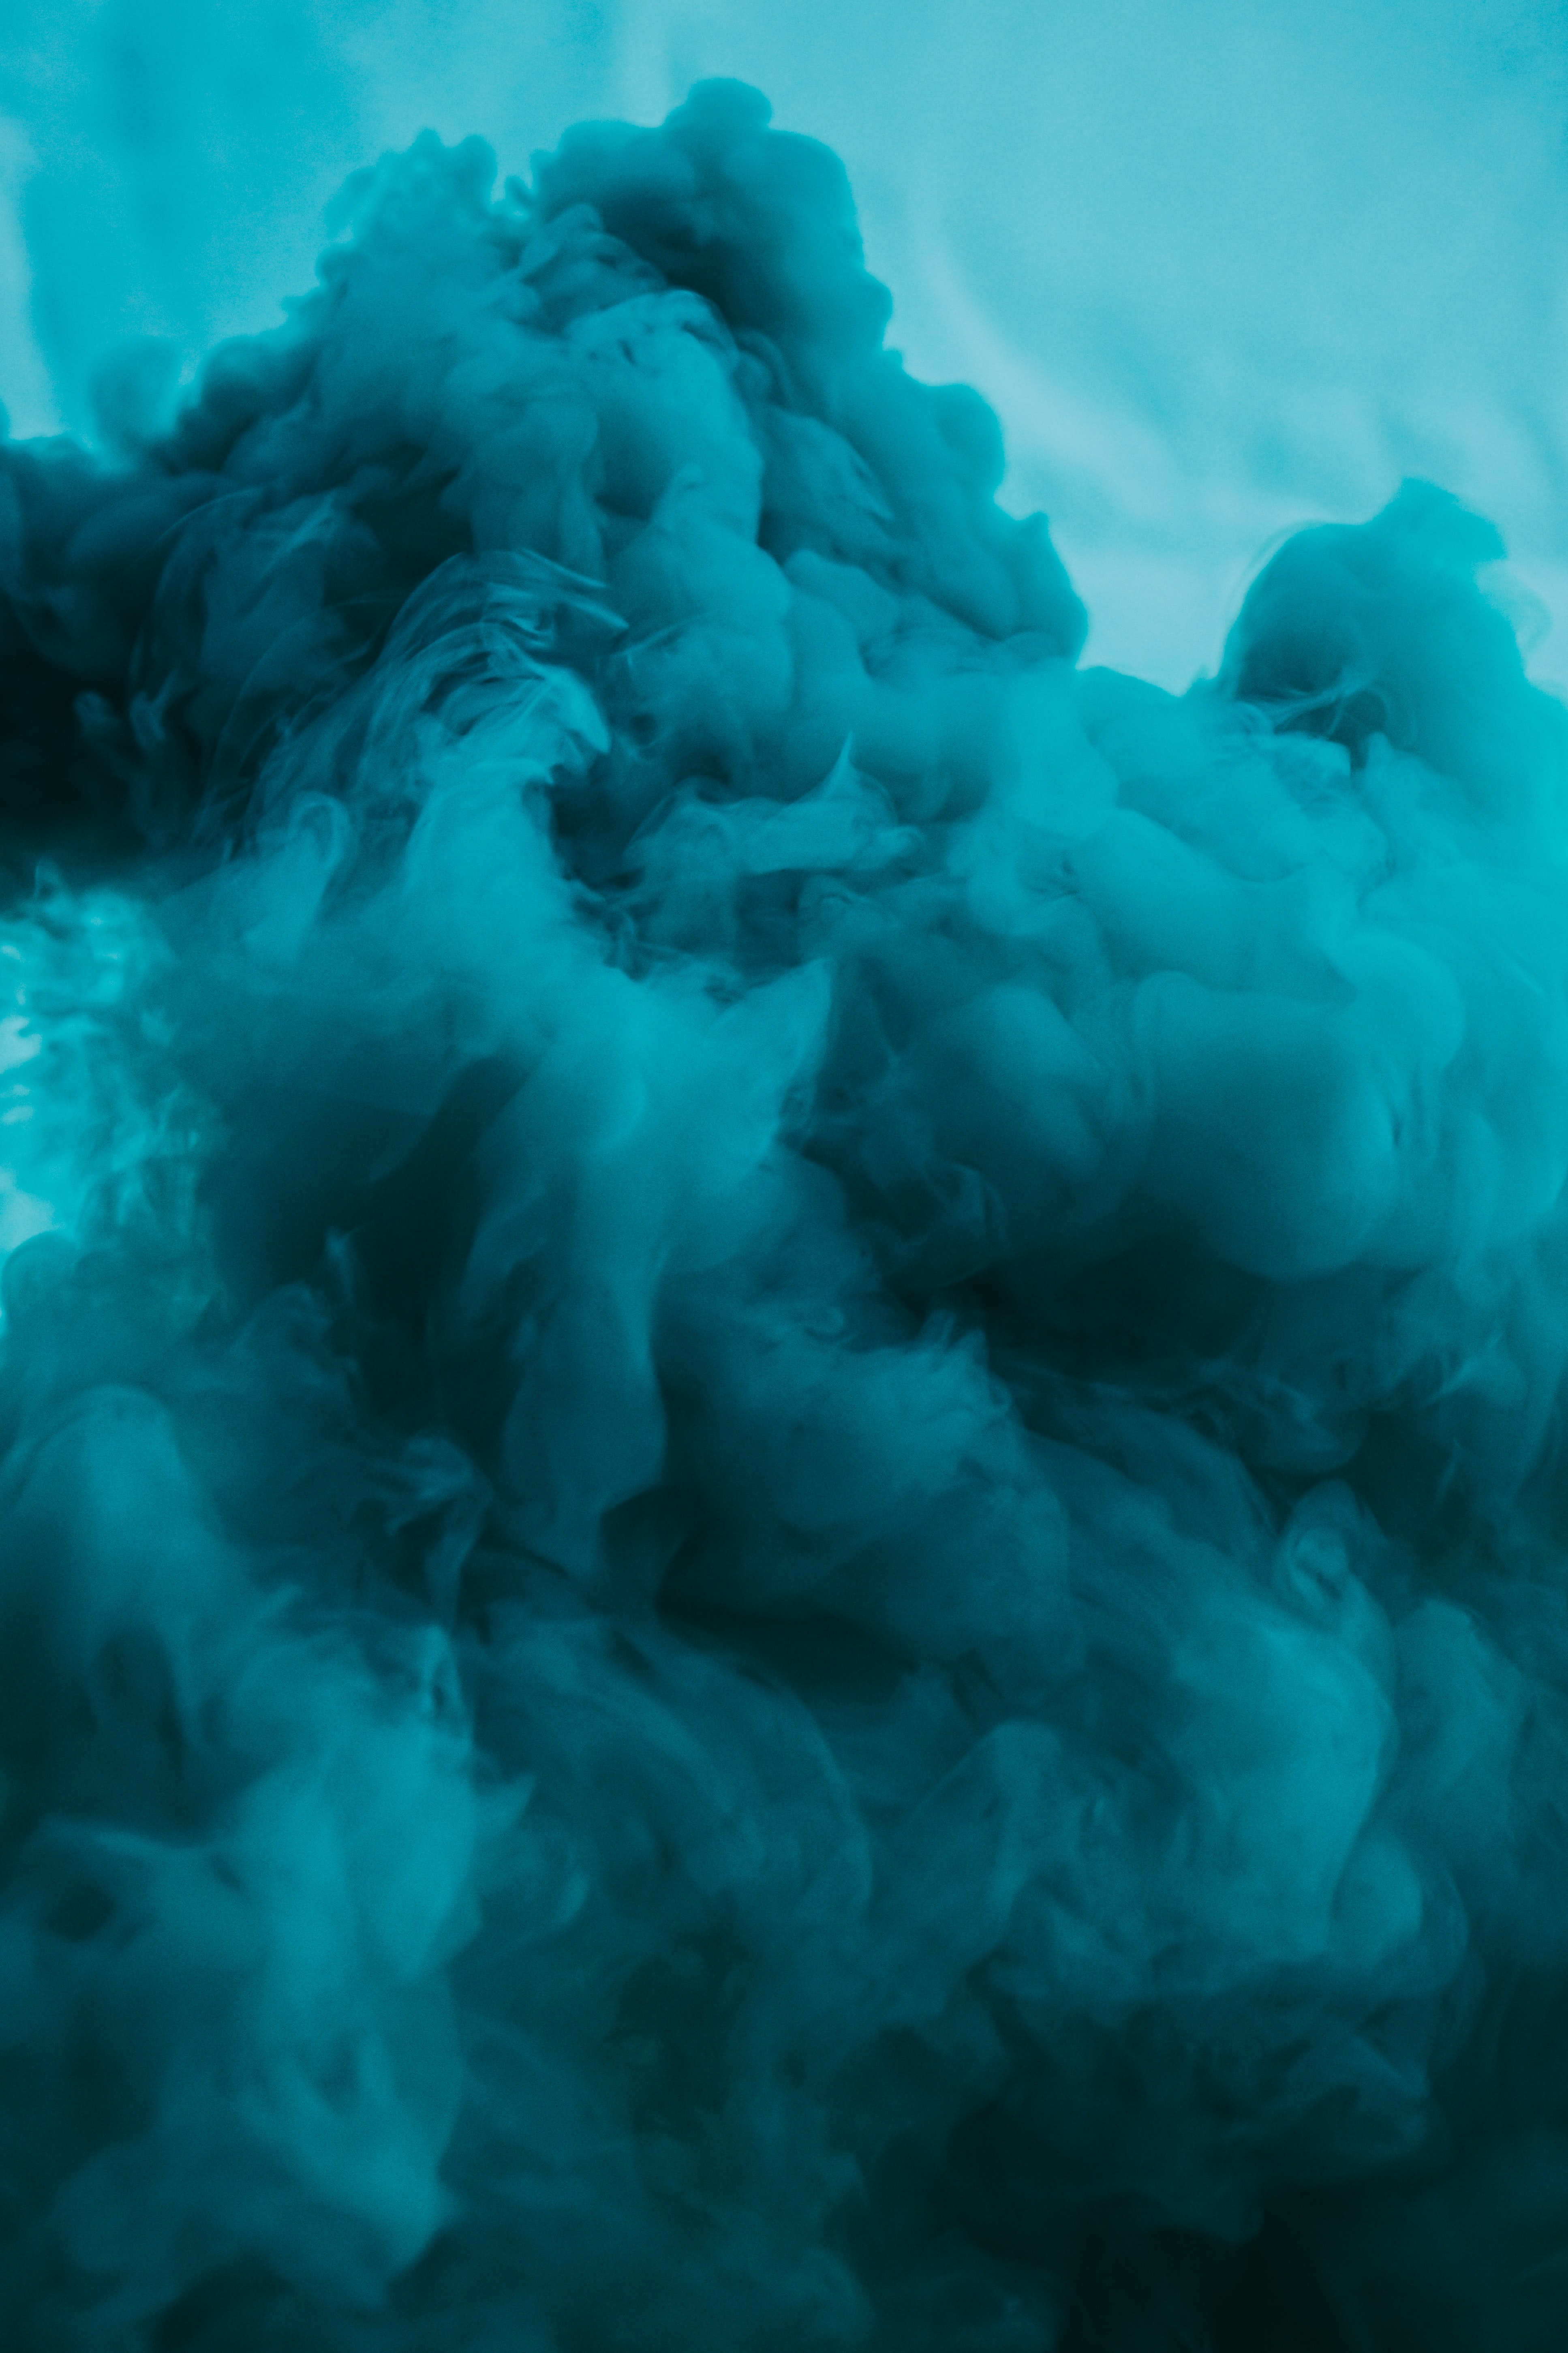 104501 free download Blue wallpapers for phone, Abstract, Smoke, Cloud Blue images and screensavers for mobile